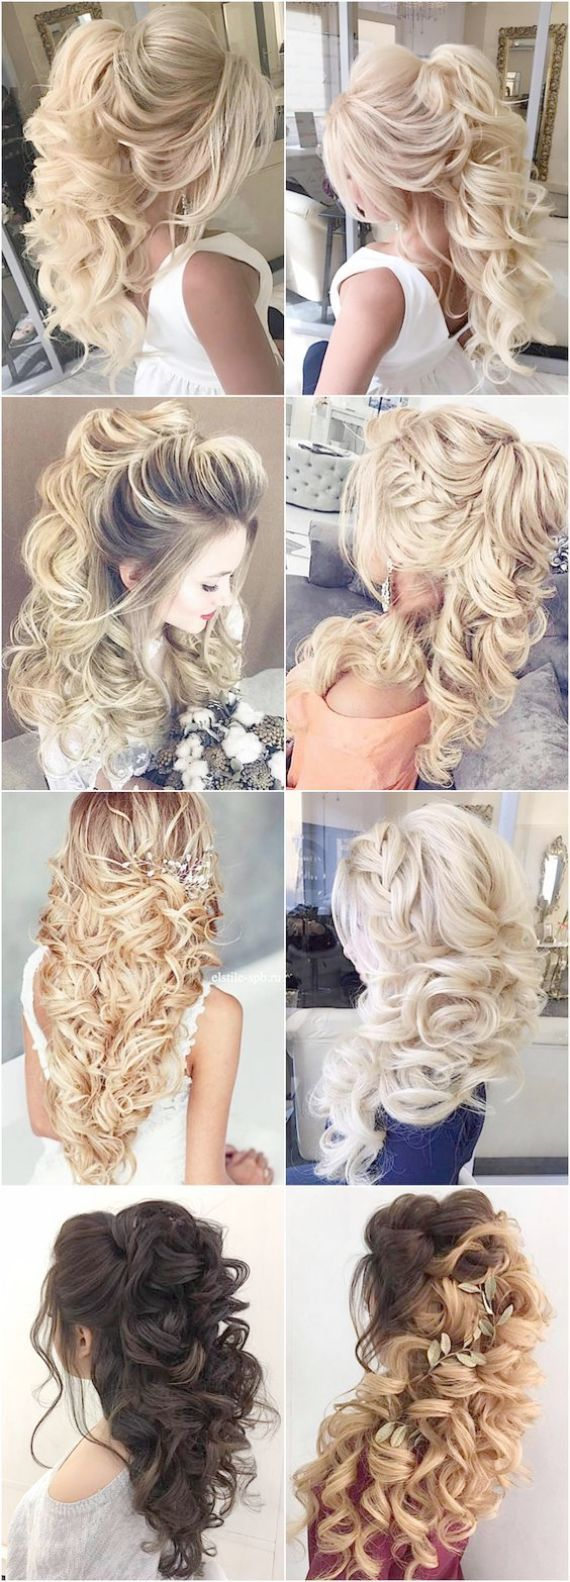 Trendy ue wedding hairstyles for long hair download great